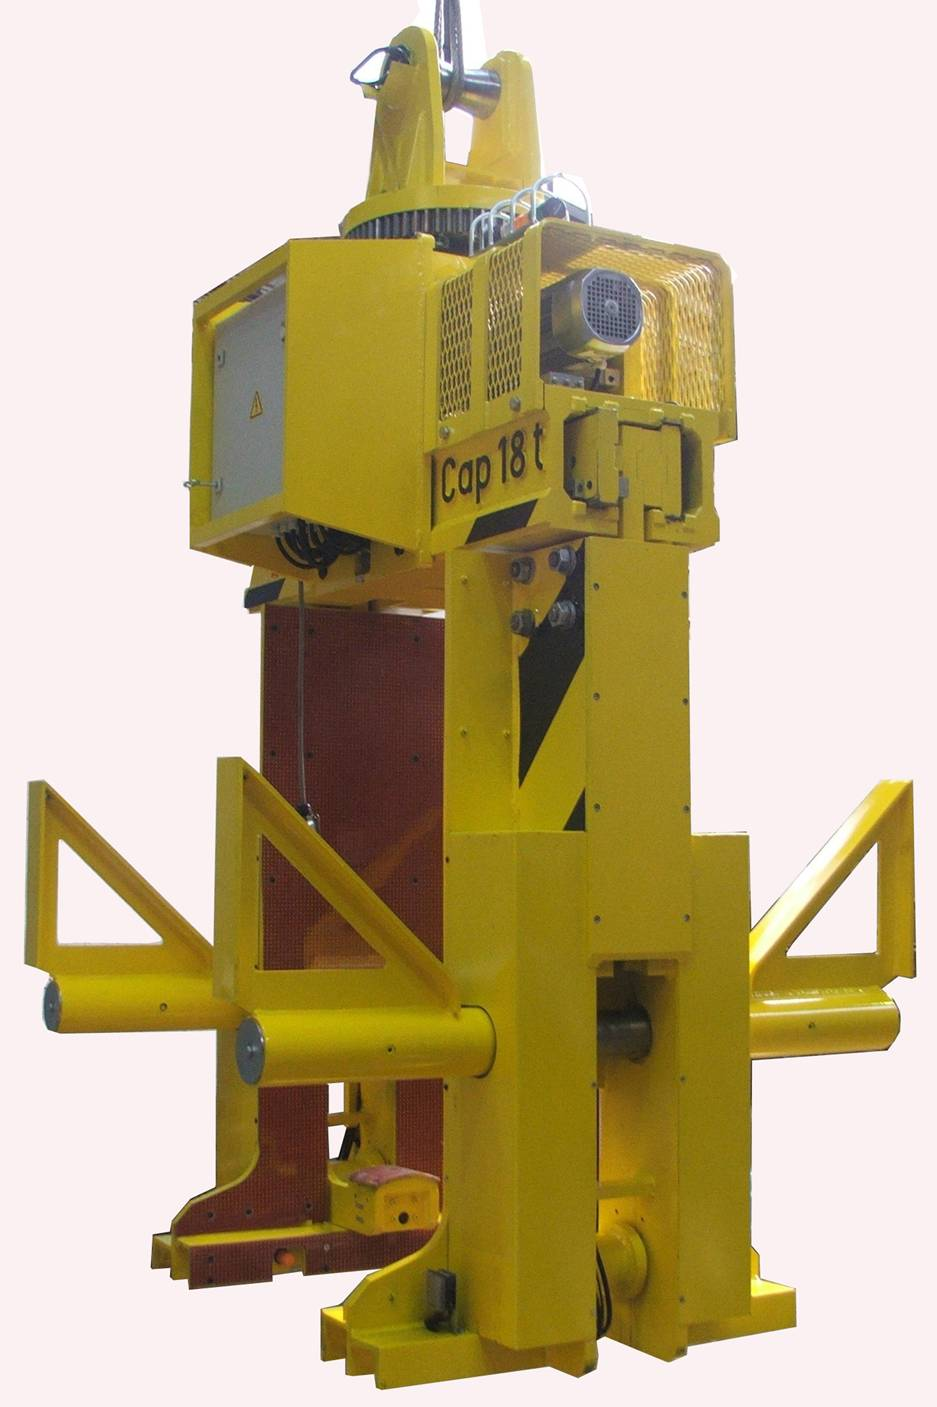 Tong for handling Coils in horizontal position or vertical Coils on palettes with Safety Device to prevent sliding of Vertical Coils from the palette